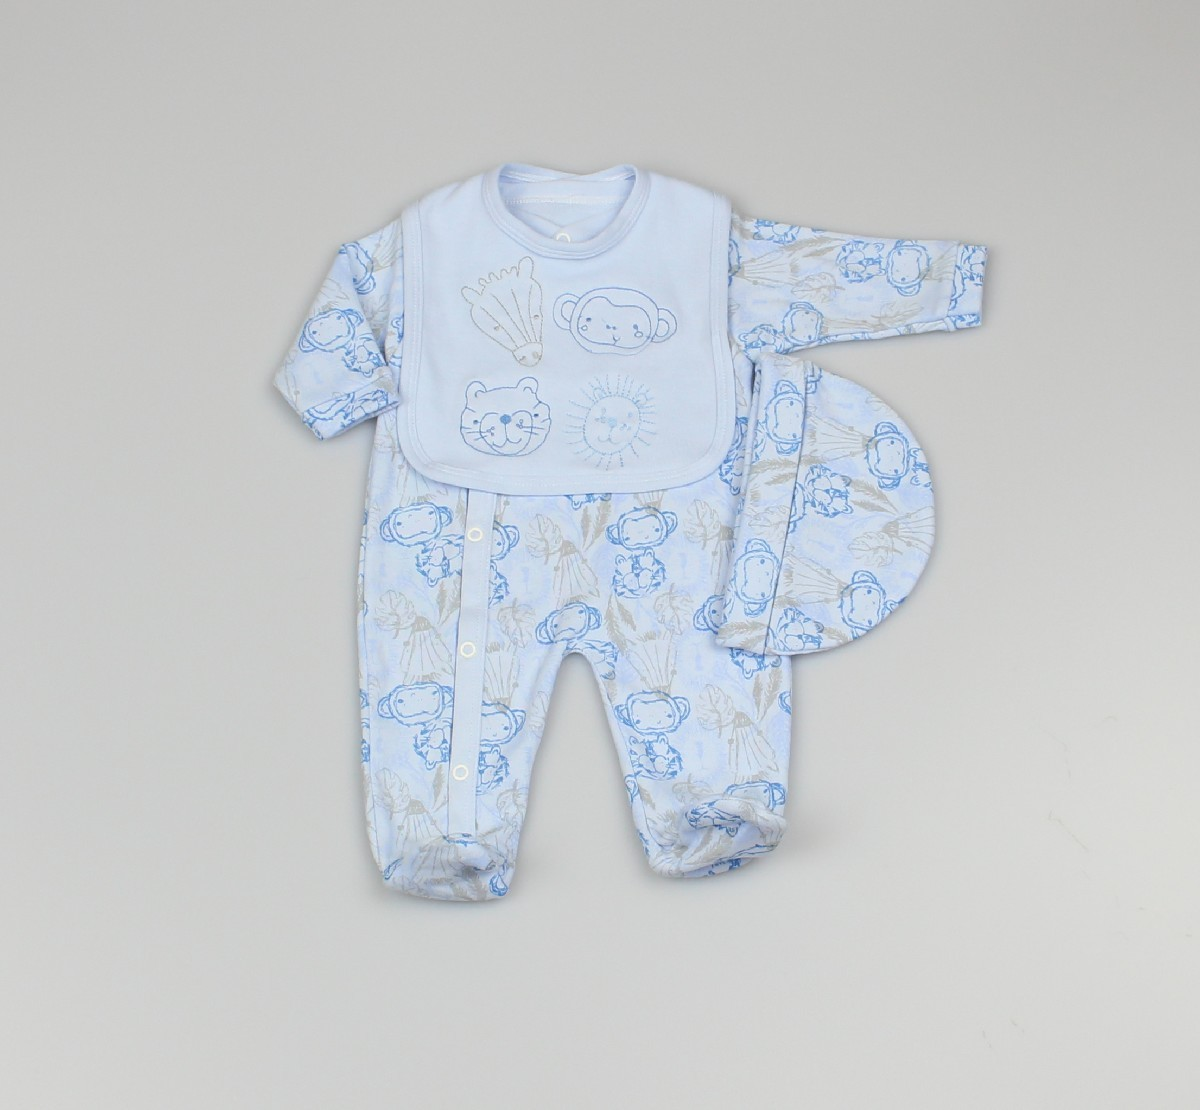 Baby 3pc Layette Gift Set - Sleepsuit, Bib And Cap